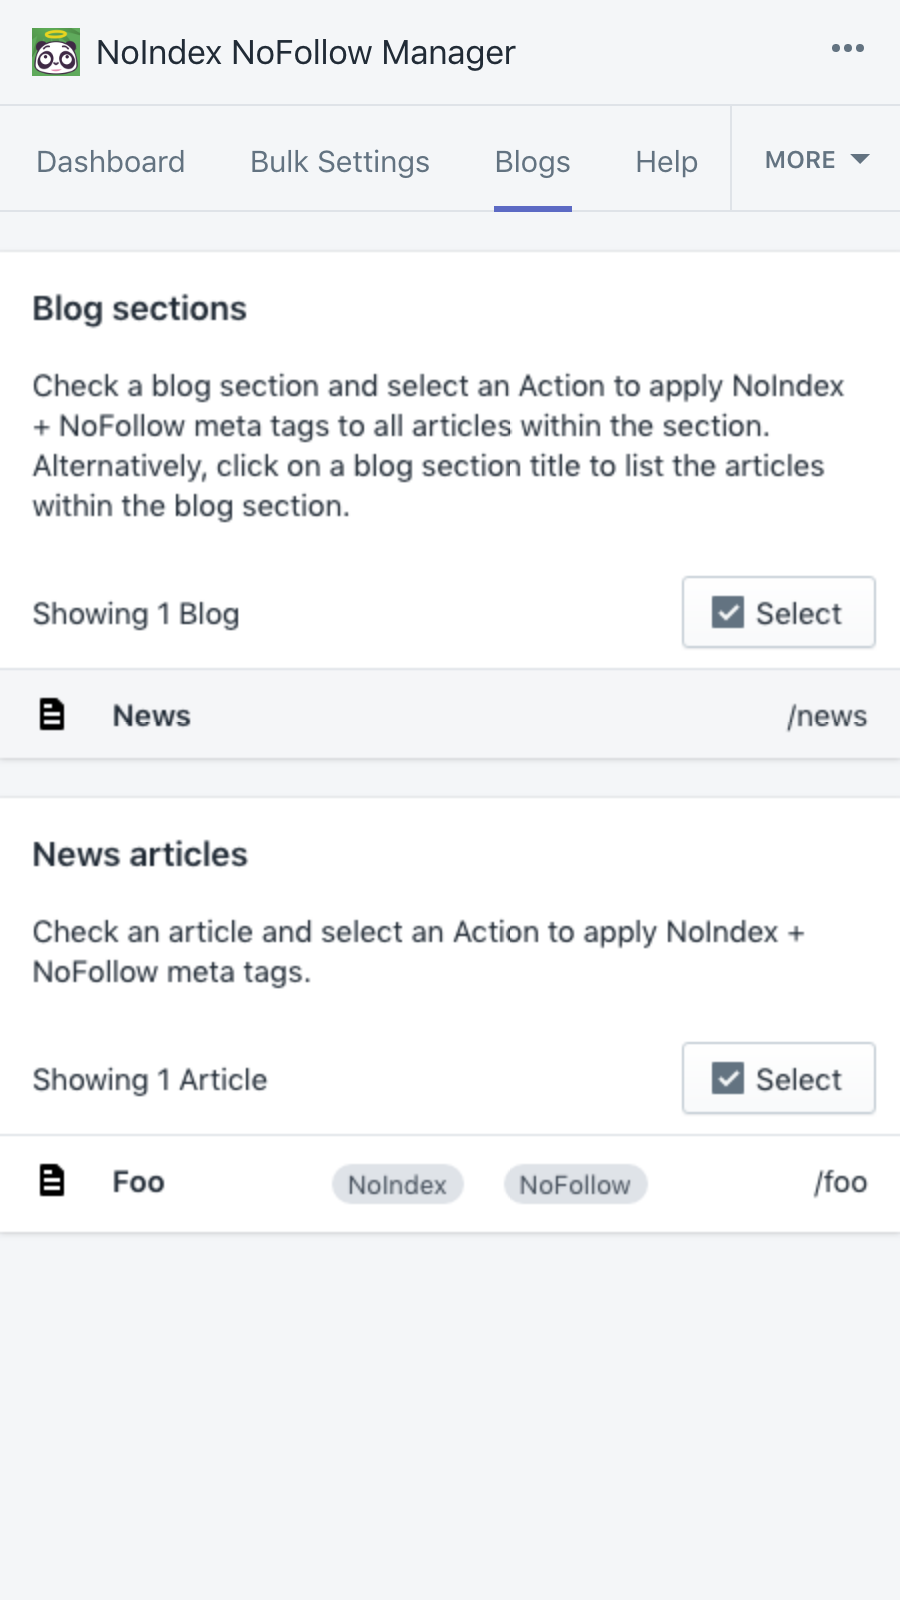 Control how blog sections & articles should be indexed/followed